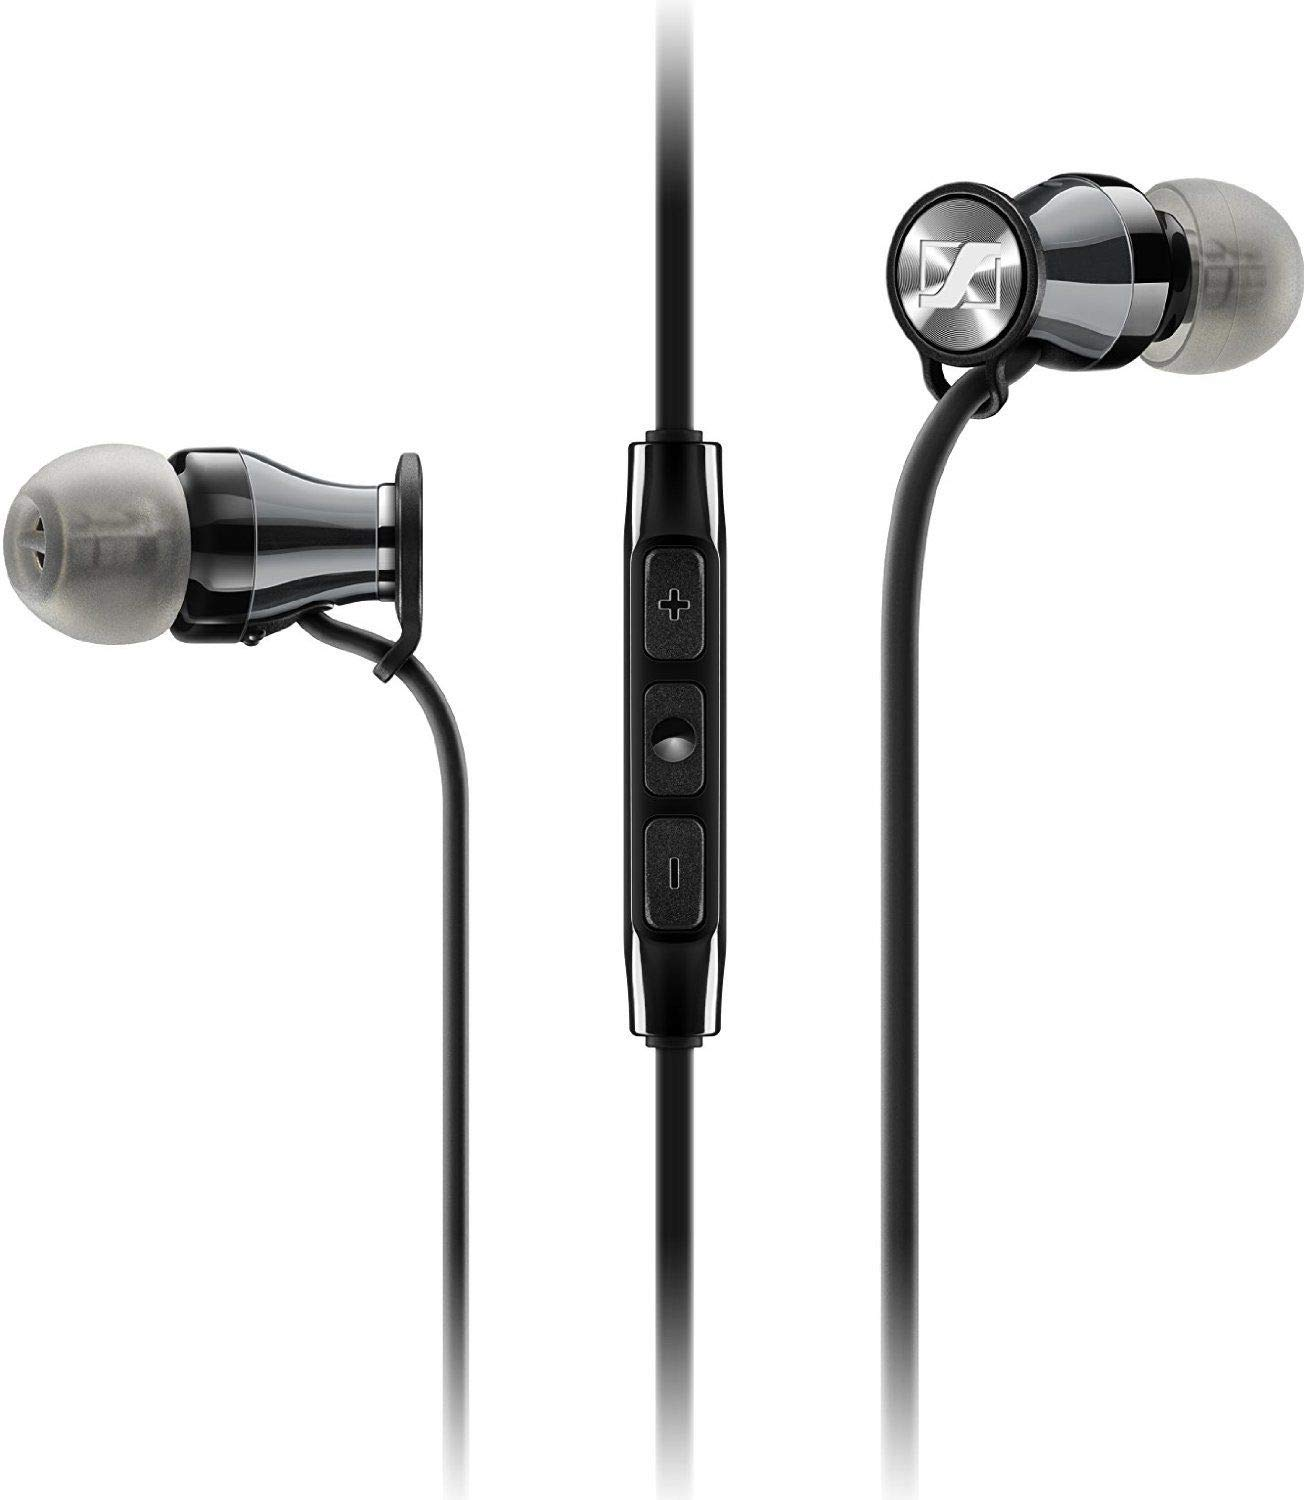 Sennheiser Momentum In-Ear Headphones (Black/Chrome) For